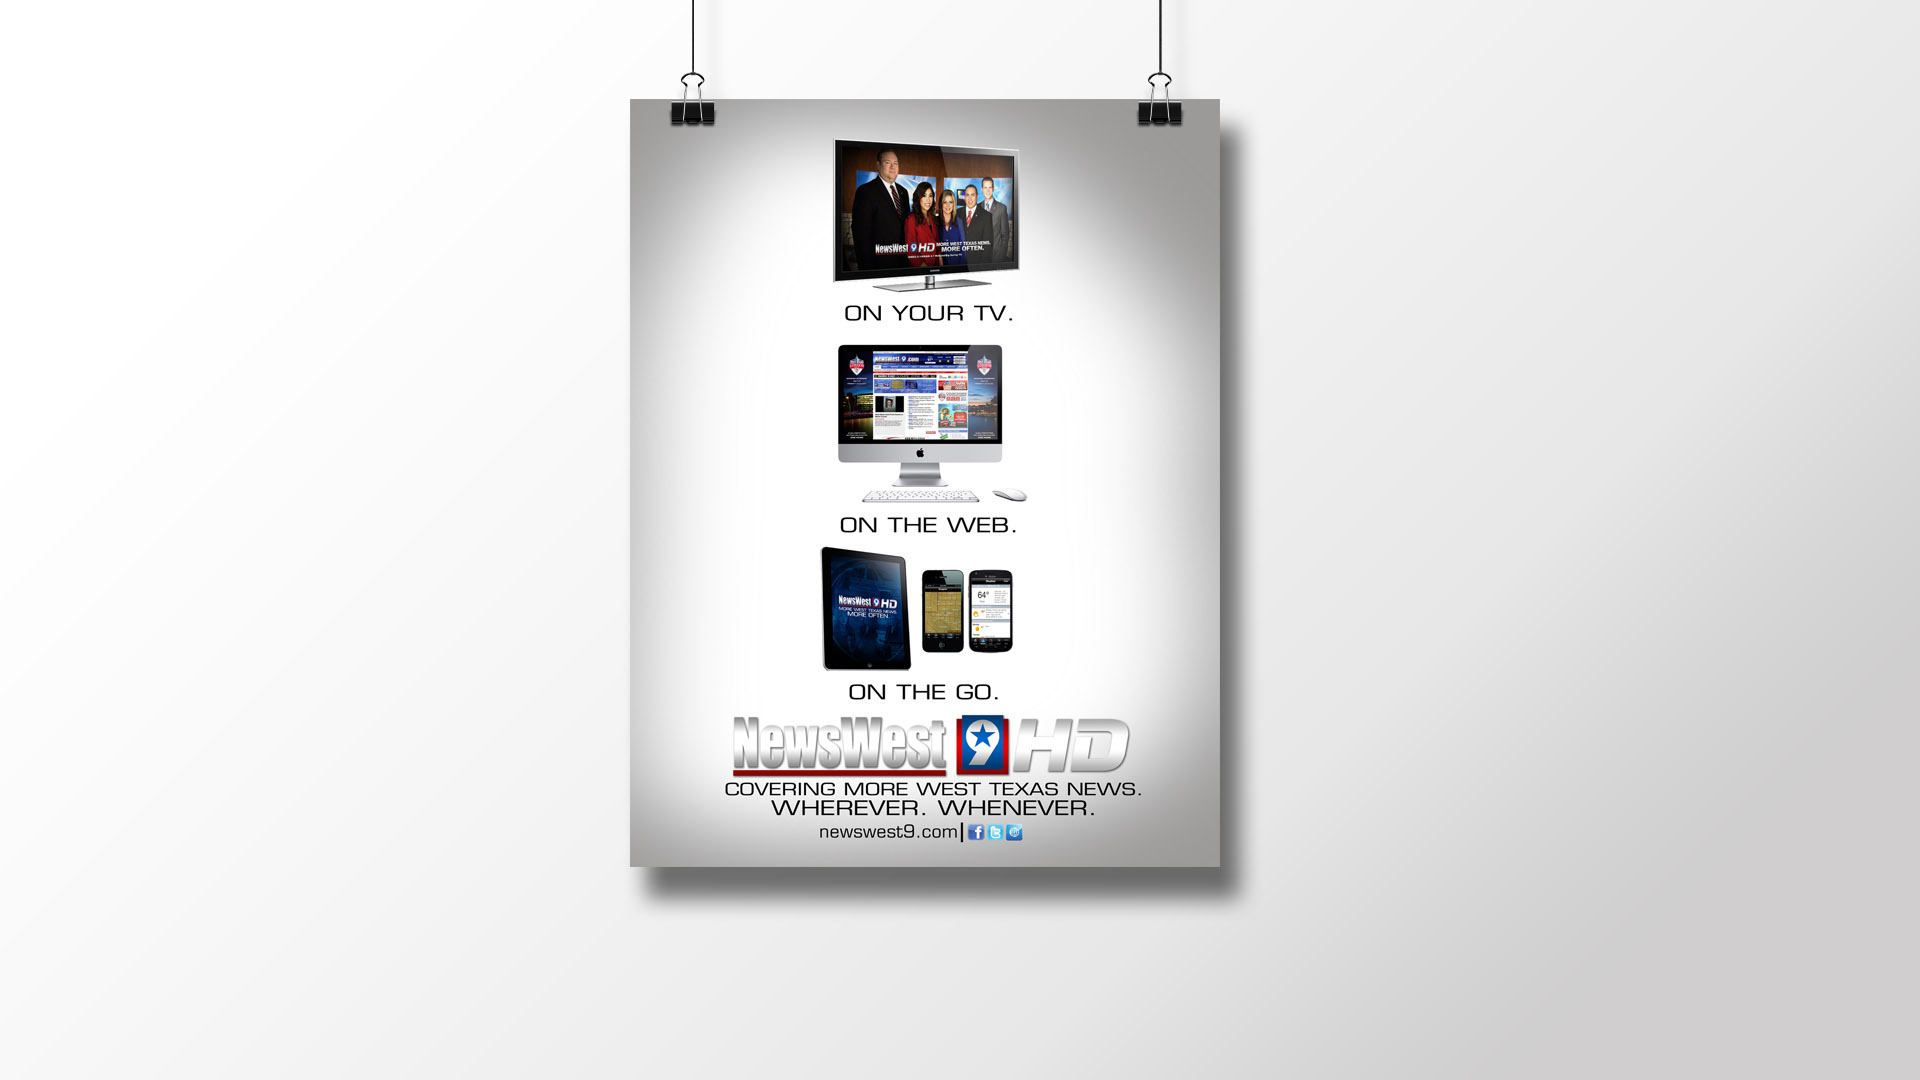 3 Sources Print Ad for NewsWest 9